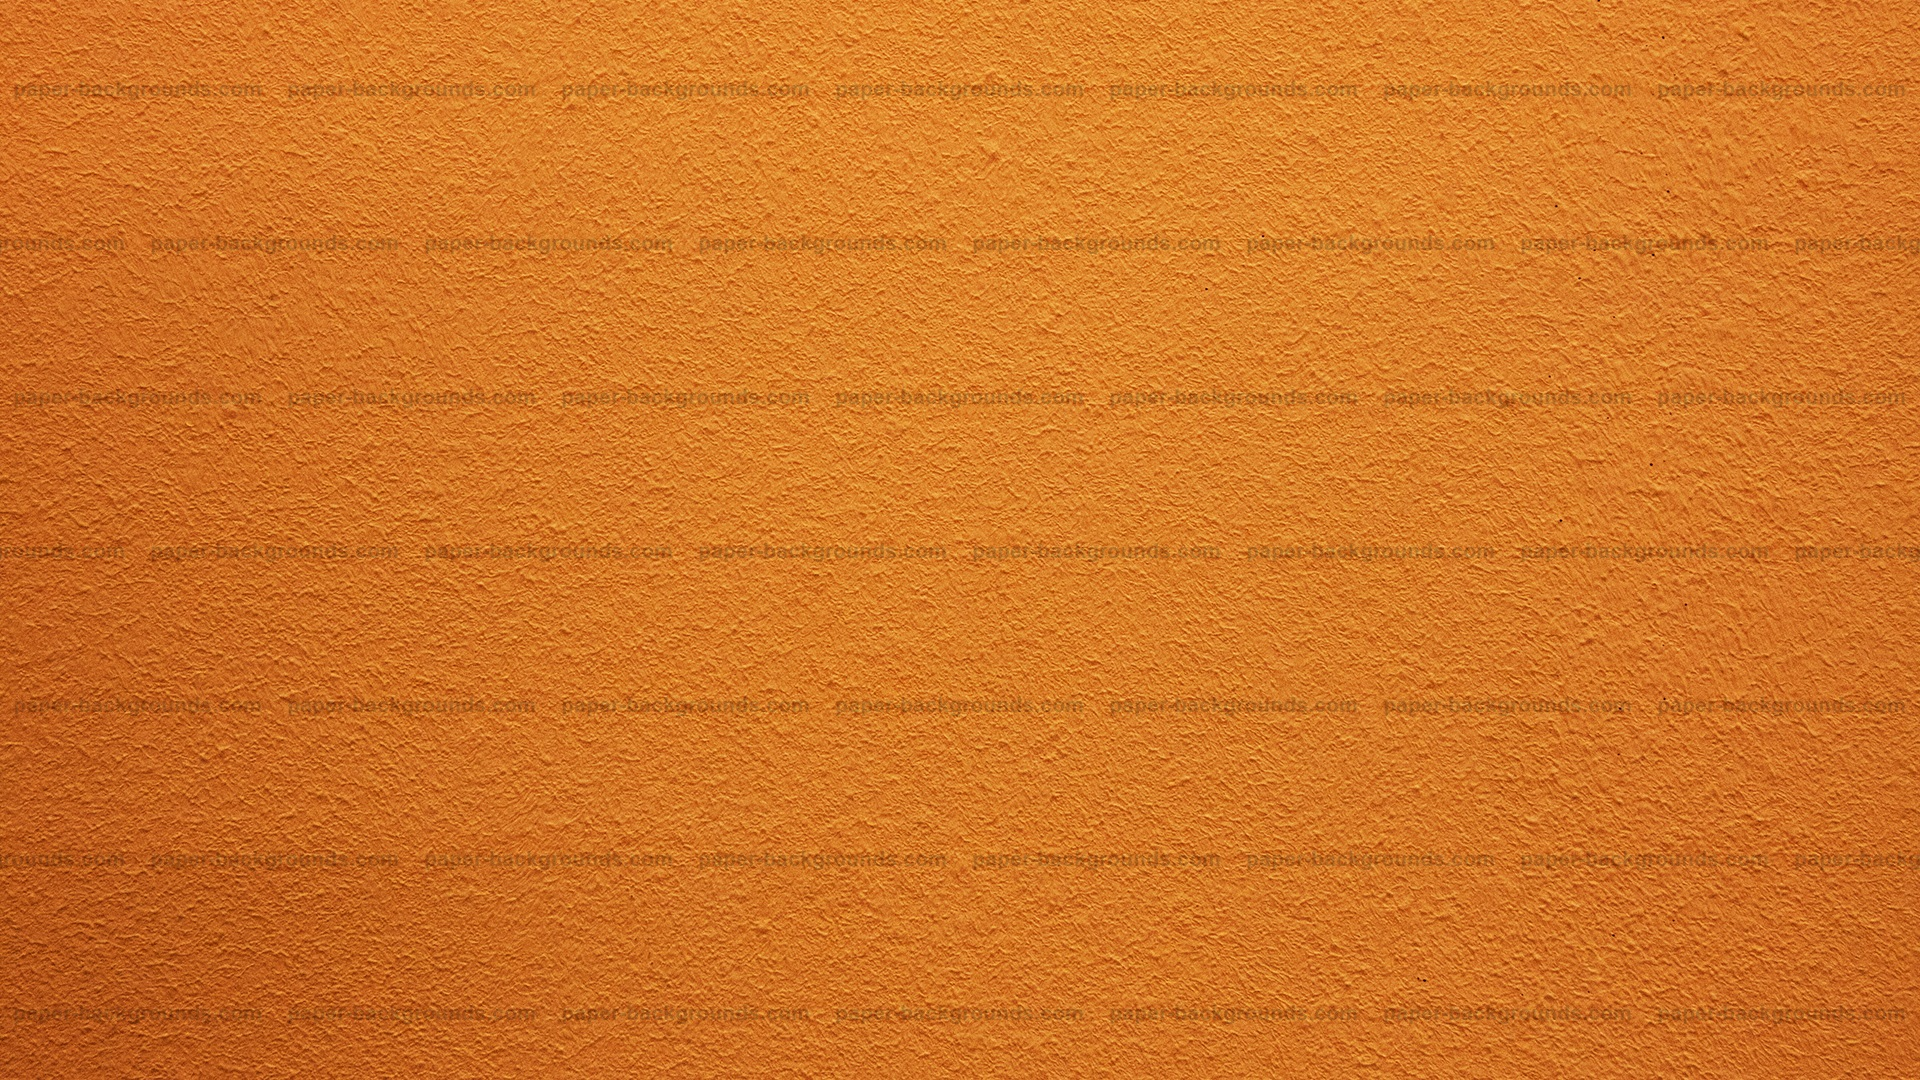 Orange Wall Texture HD